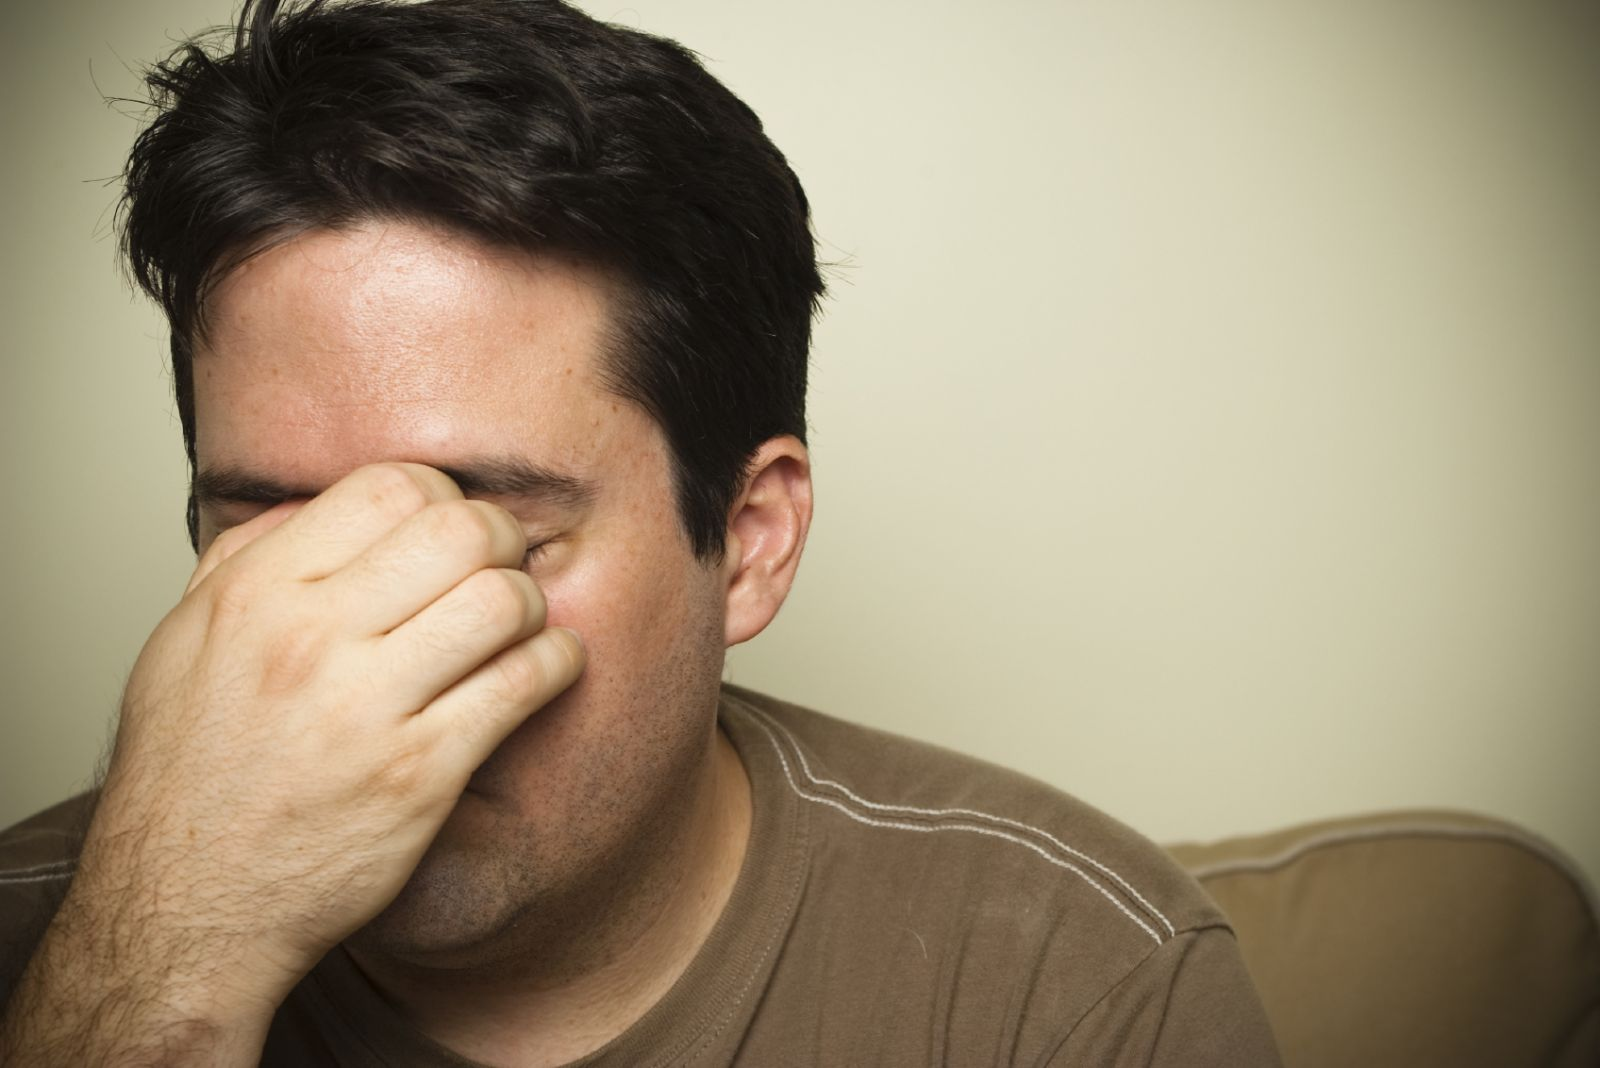 ways for preventing and treating sinusitis